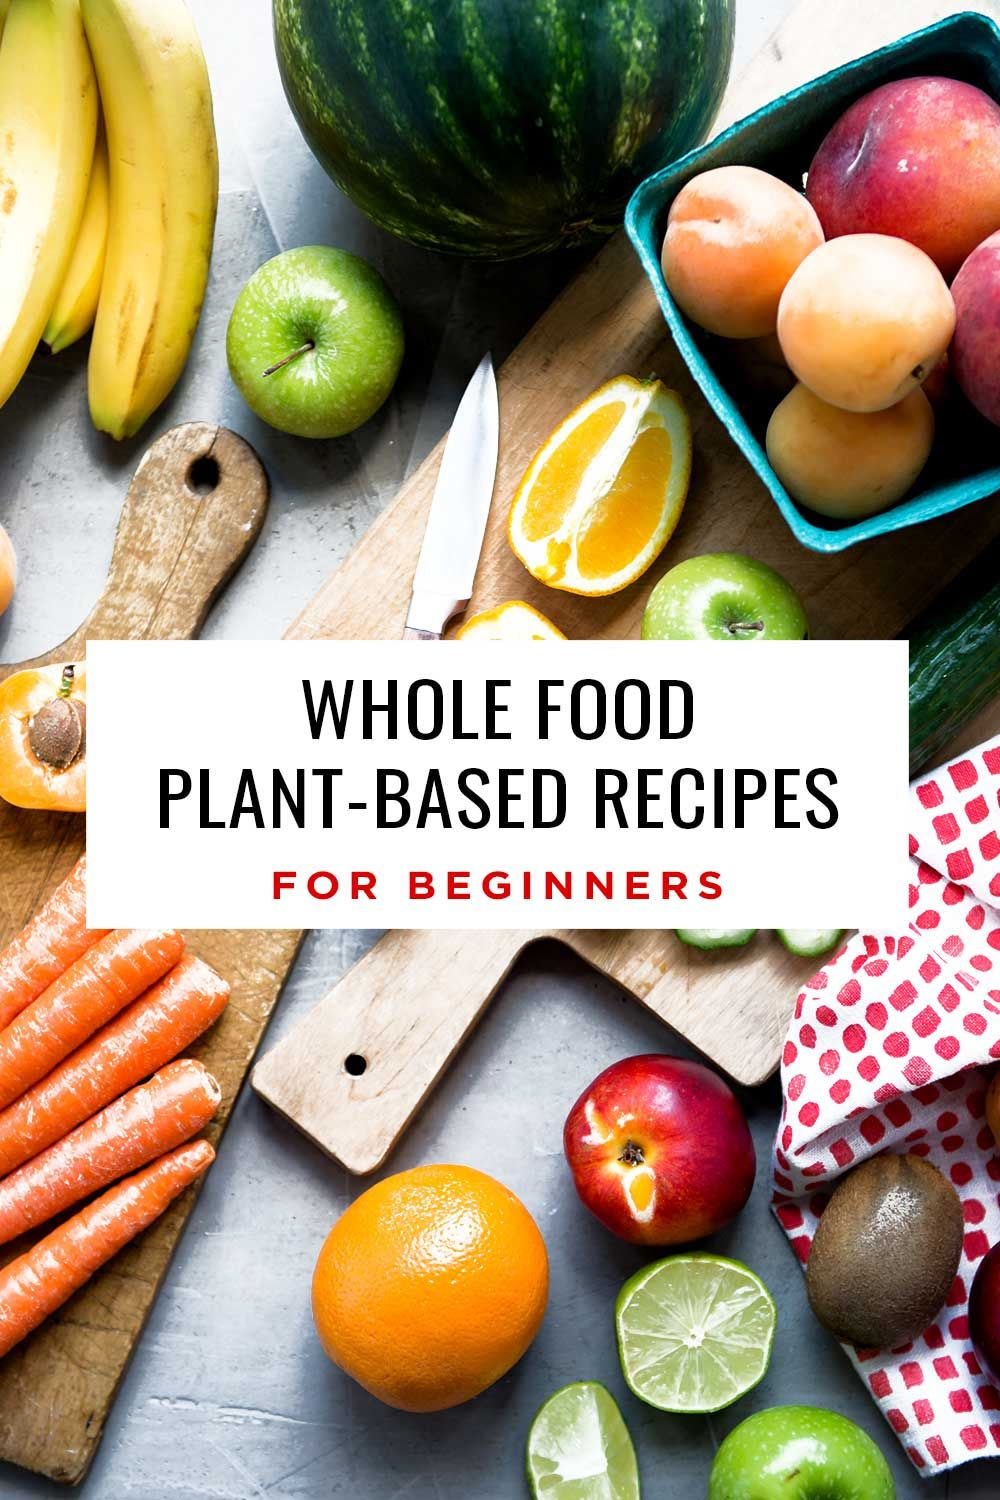 Whole Food Plant Based Recipes for Beginners 5 Simple